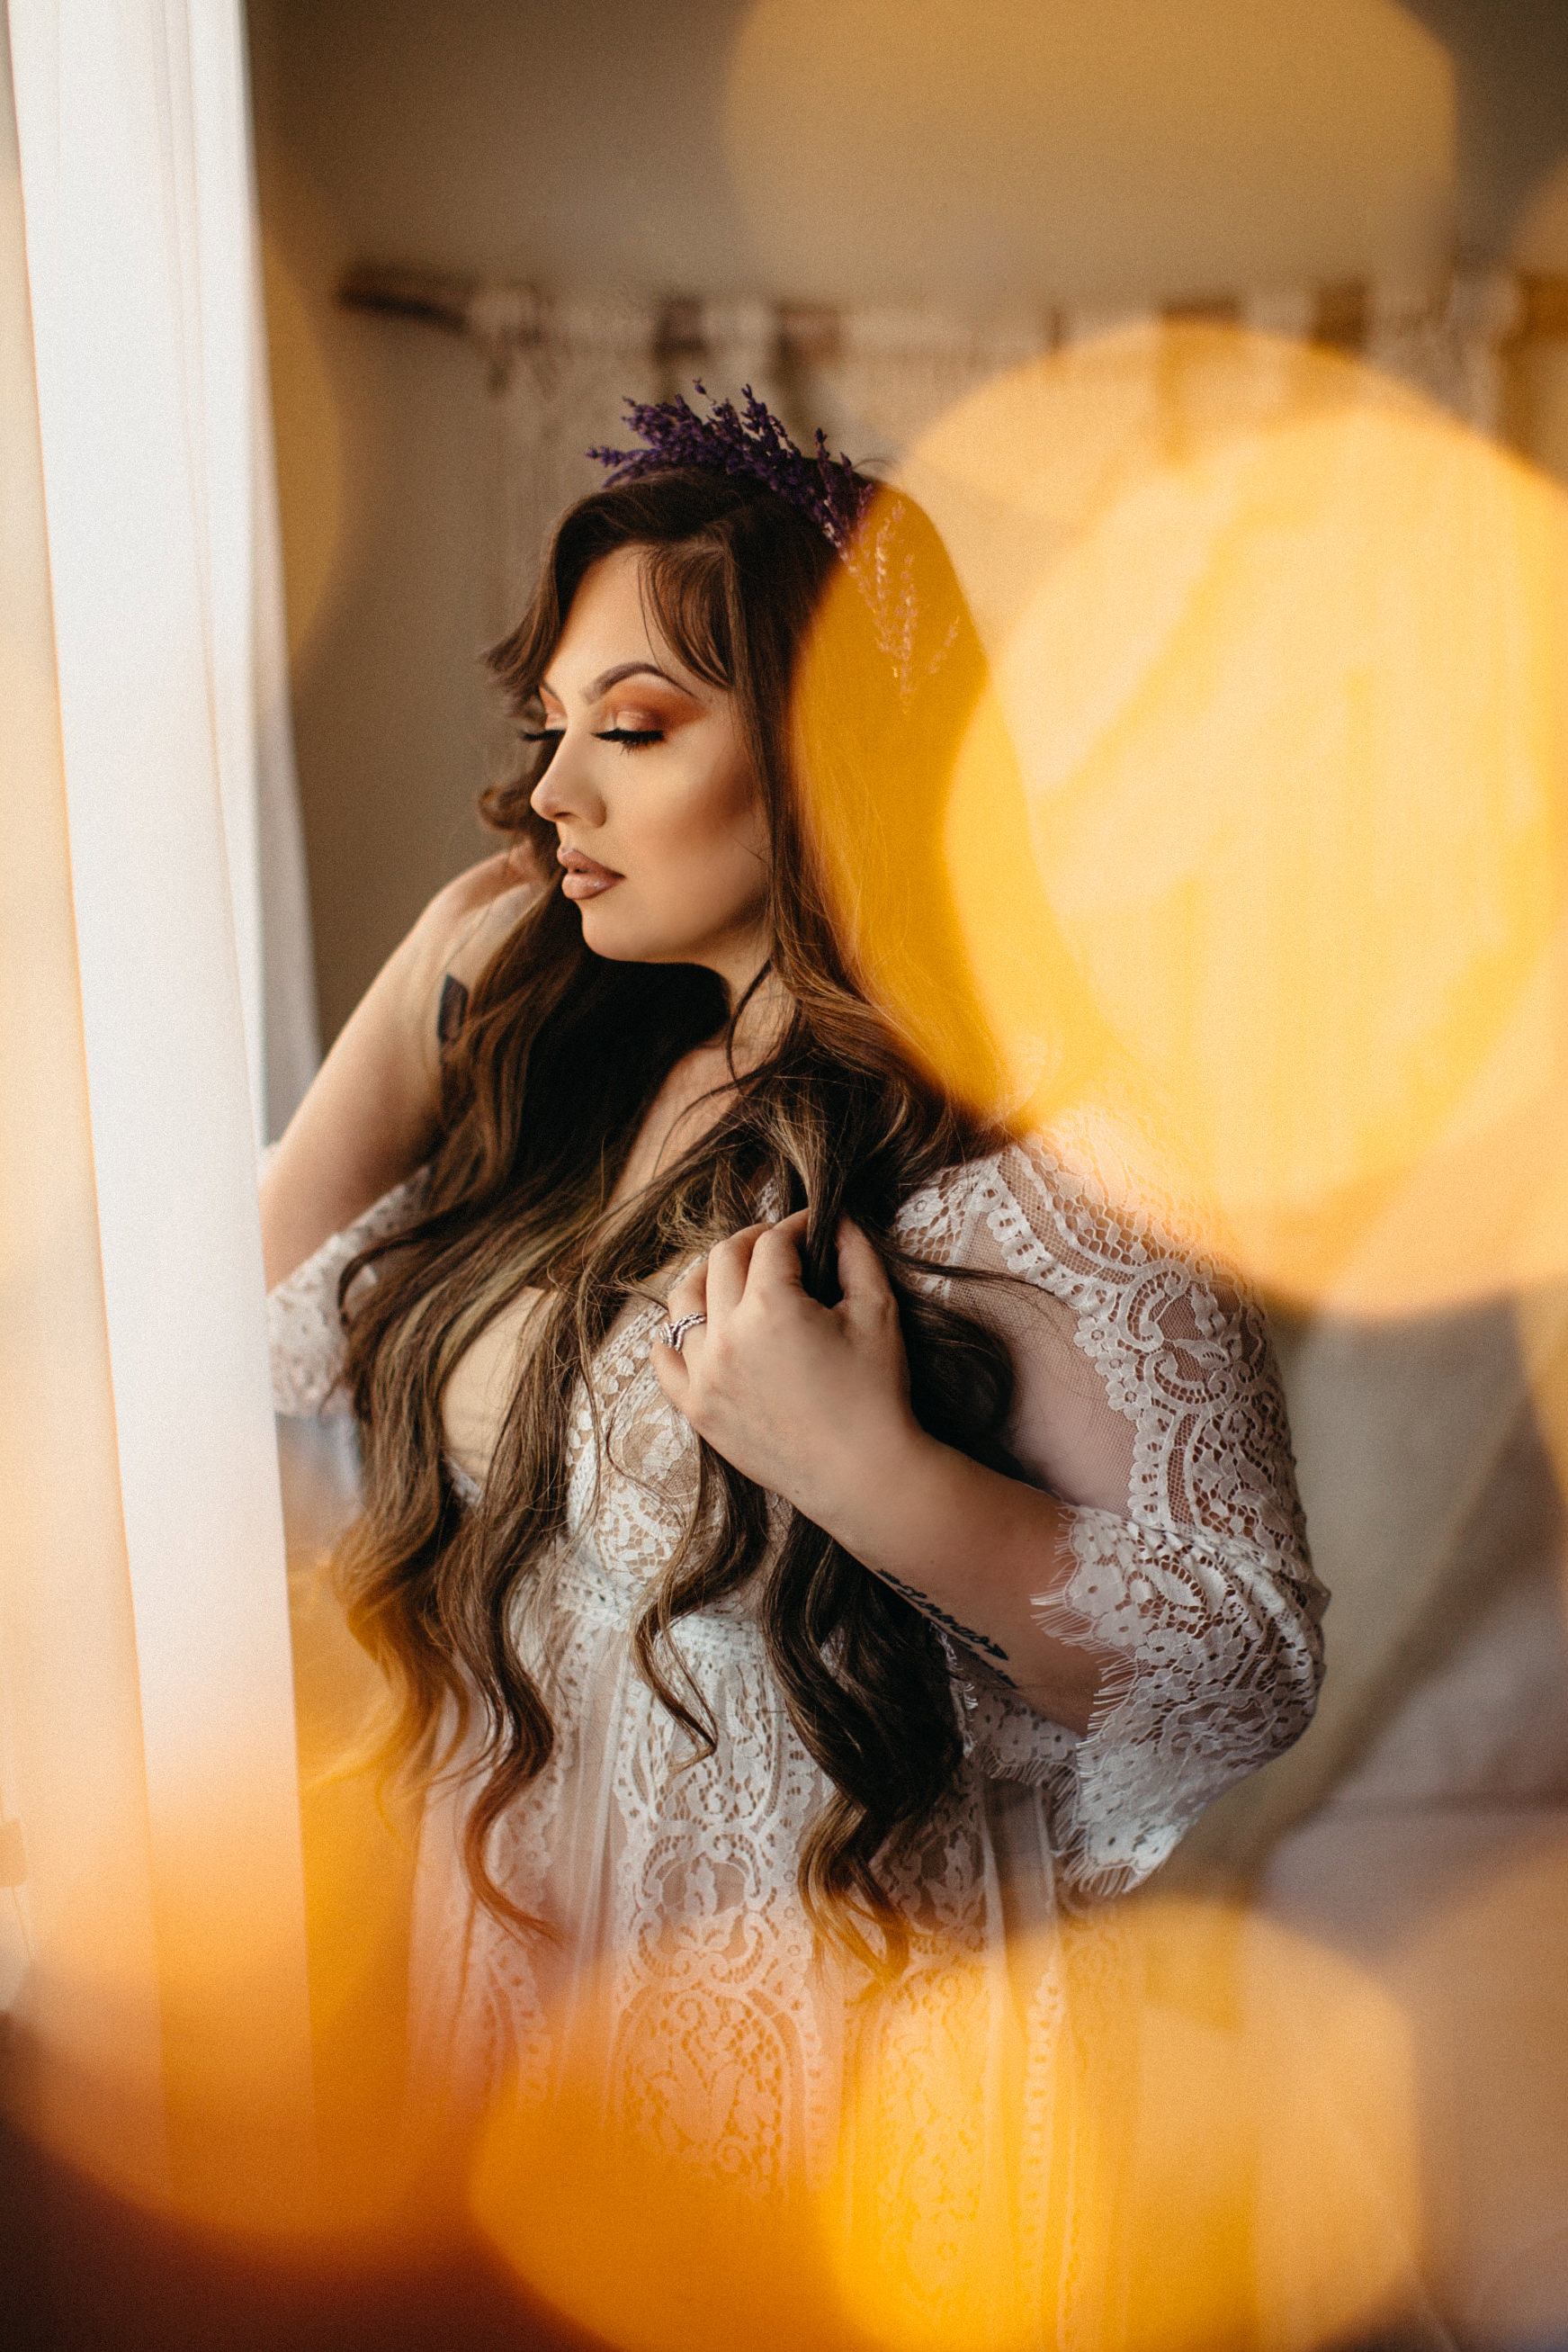 Liz Osban Photography Boudoir Sweetheart Sessions Session Tavae Hurtado pinup Cheyenne Wyoming Ft Collins Colorado Self Love Flower Crown Wedding Elope Eloping Elopement Engaged Gift1.jpg